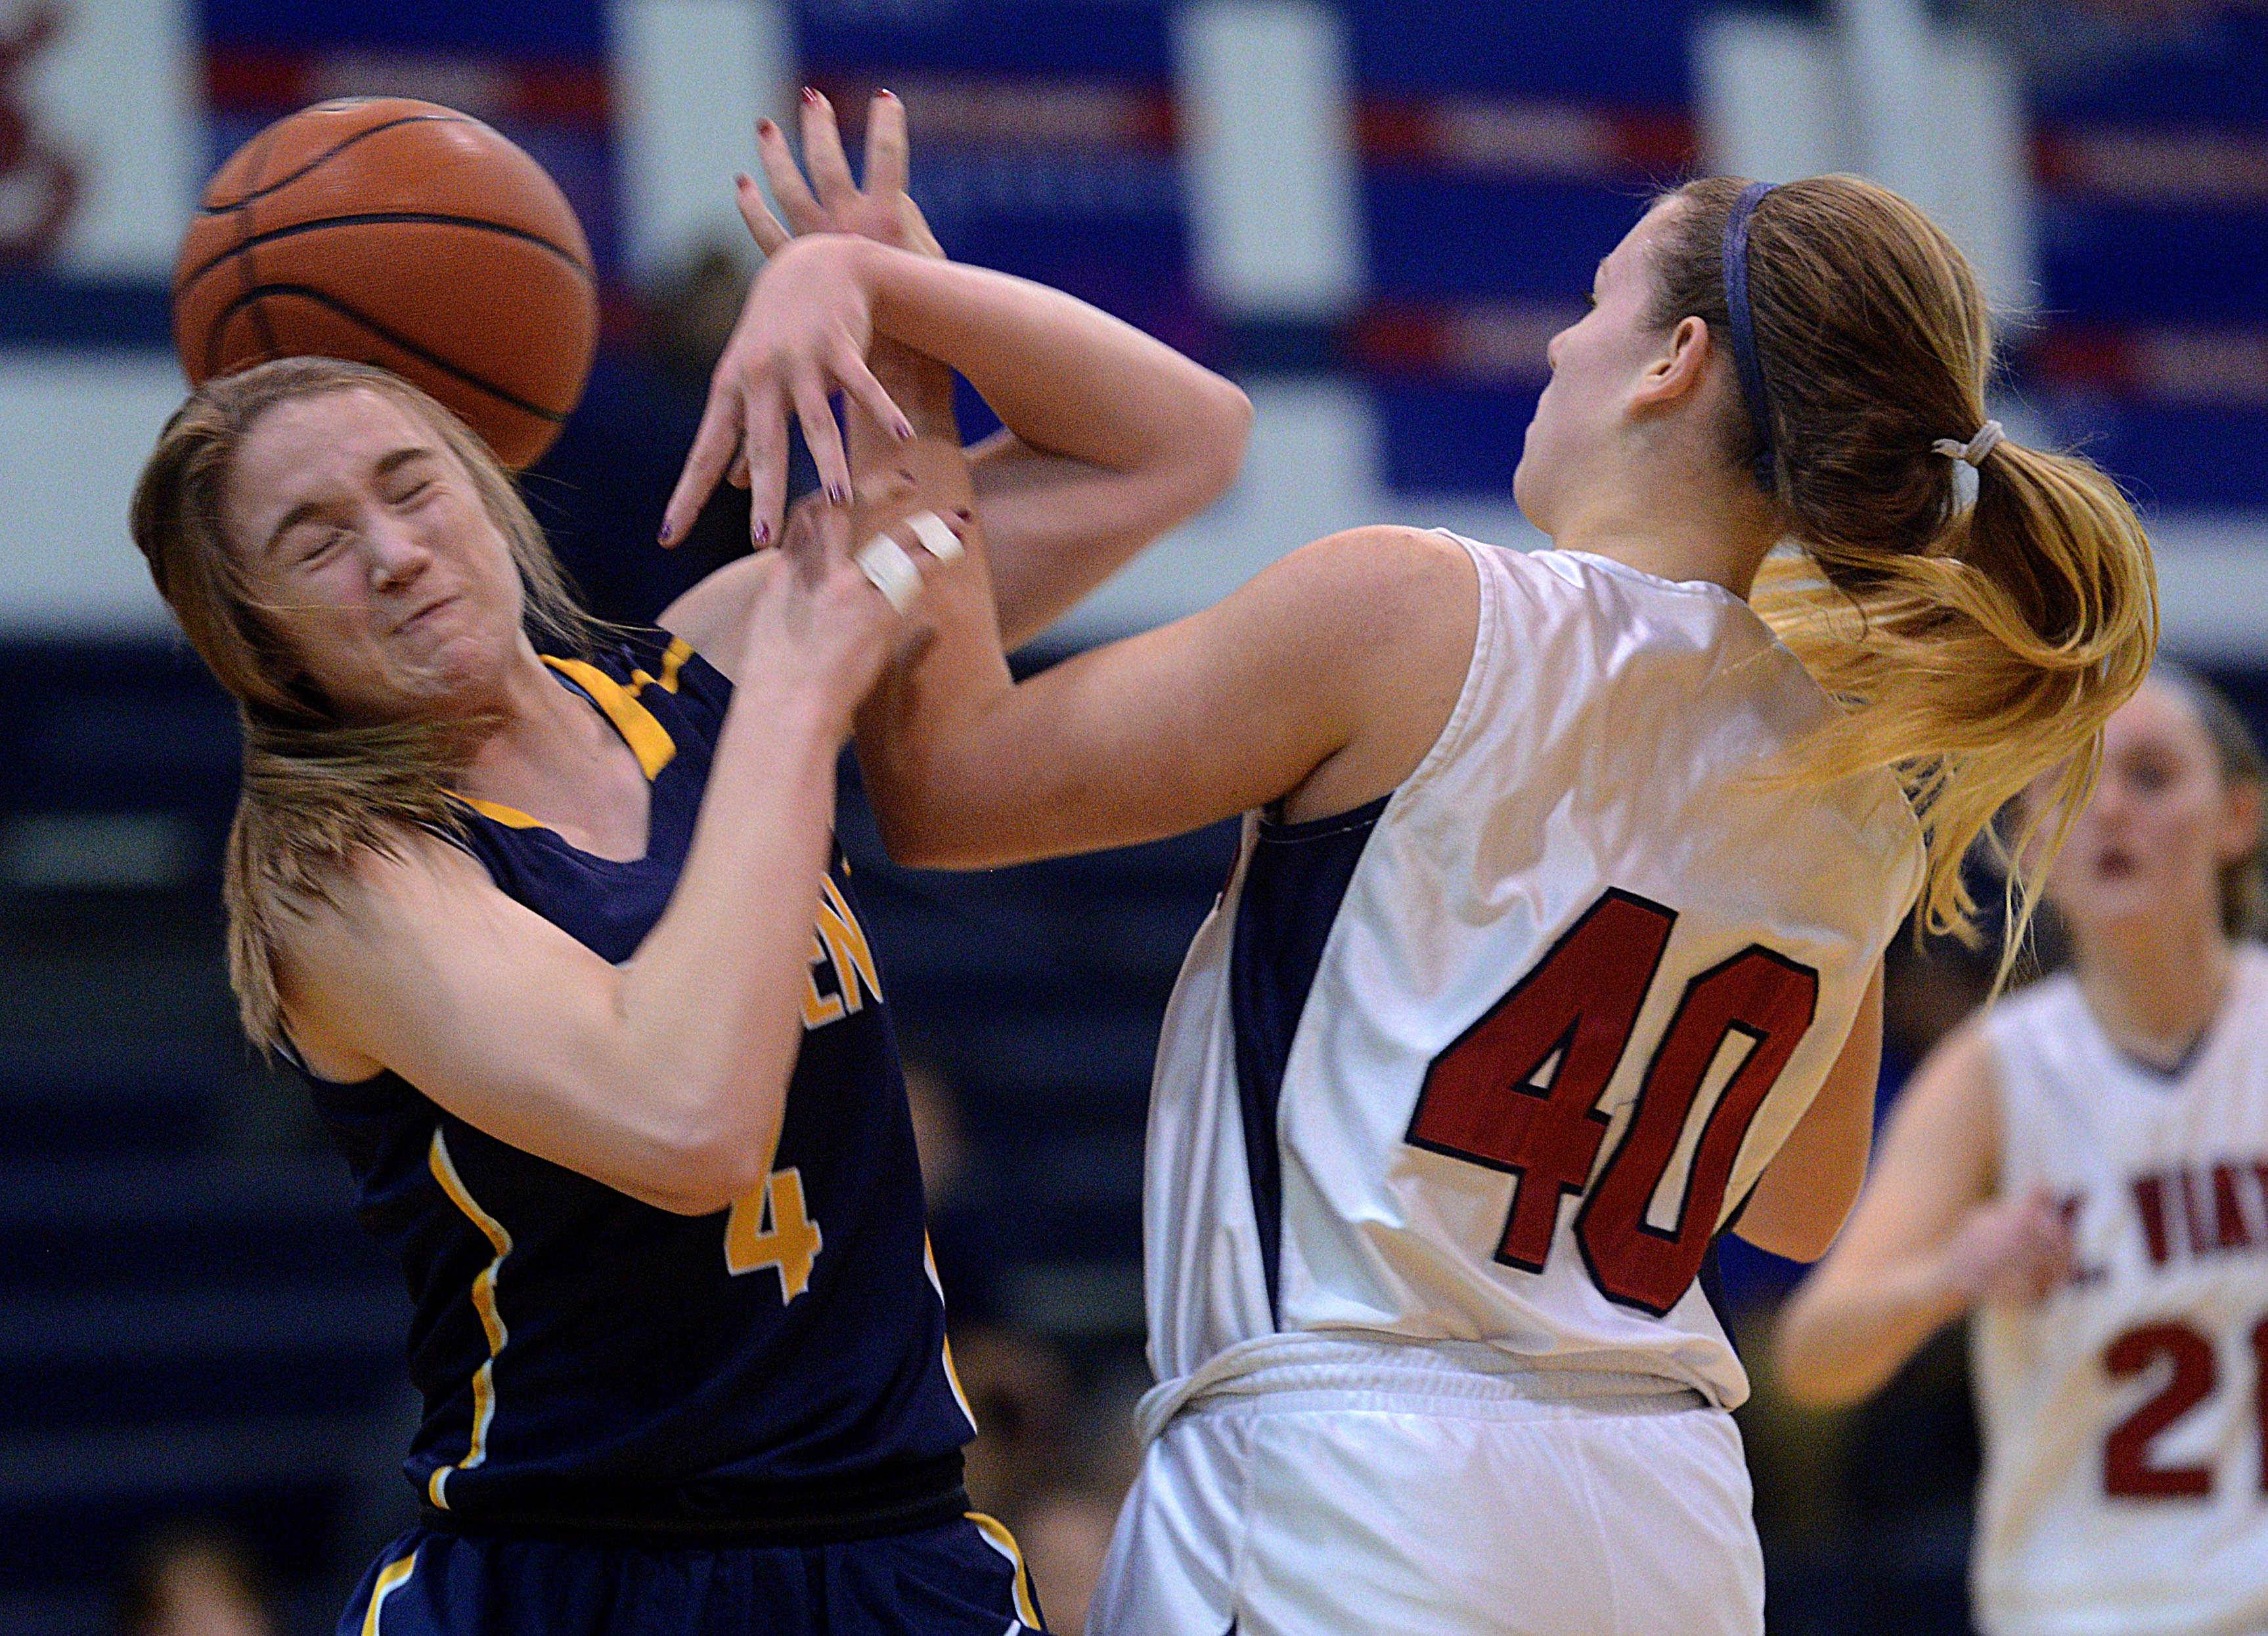 St. Viator's Kayne Stanley, right, battles Leyden's Autumn McGee for the ball during the 32nd Annual Snowflake Varsity Girls Basketball Tournament Monday night in Arlington Heights.